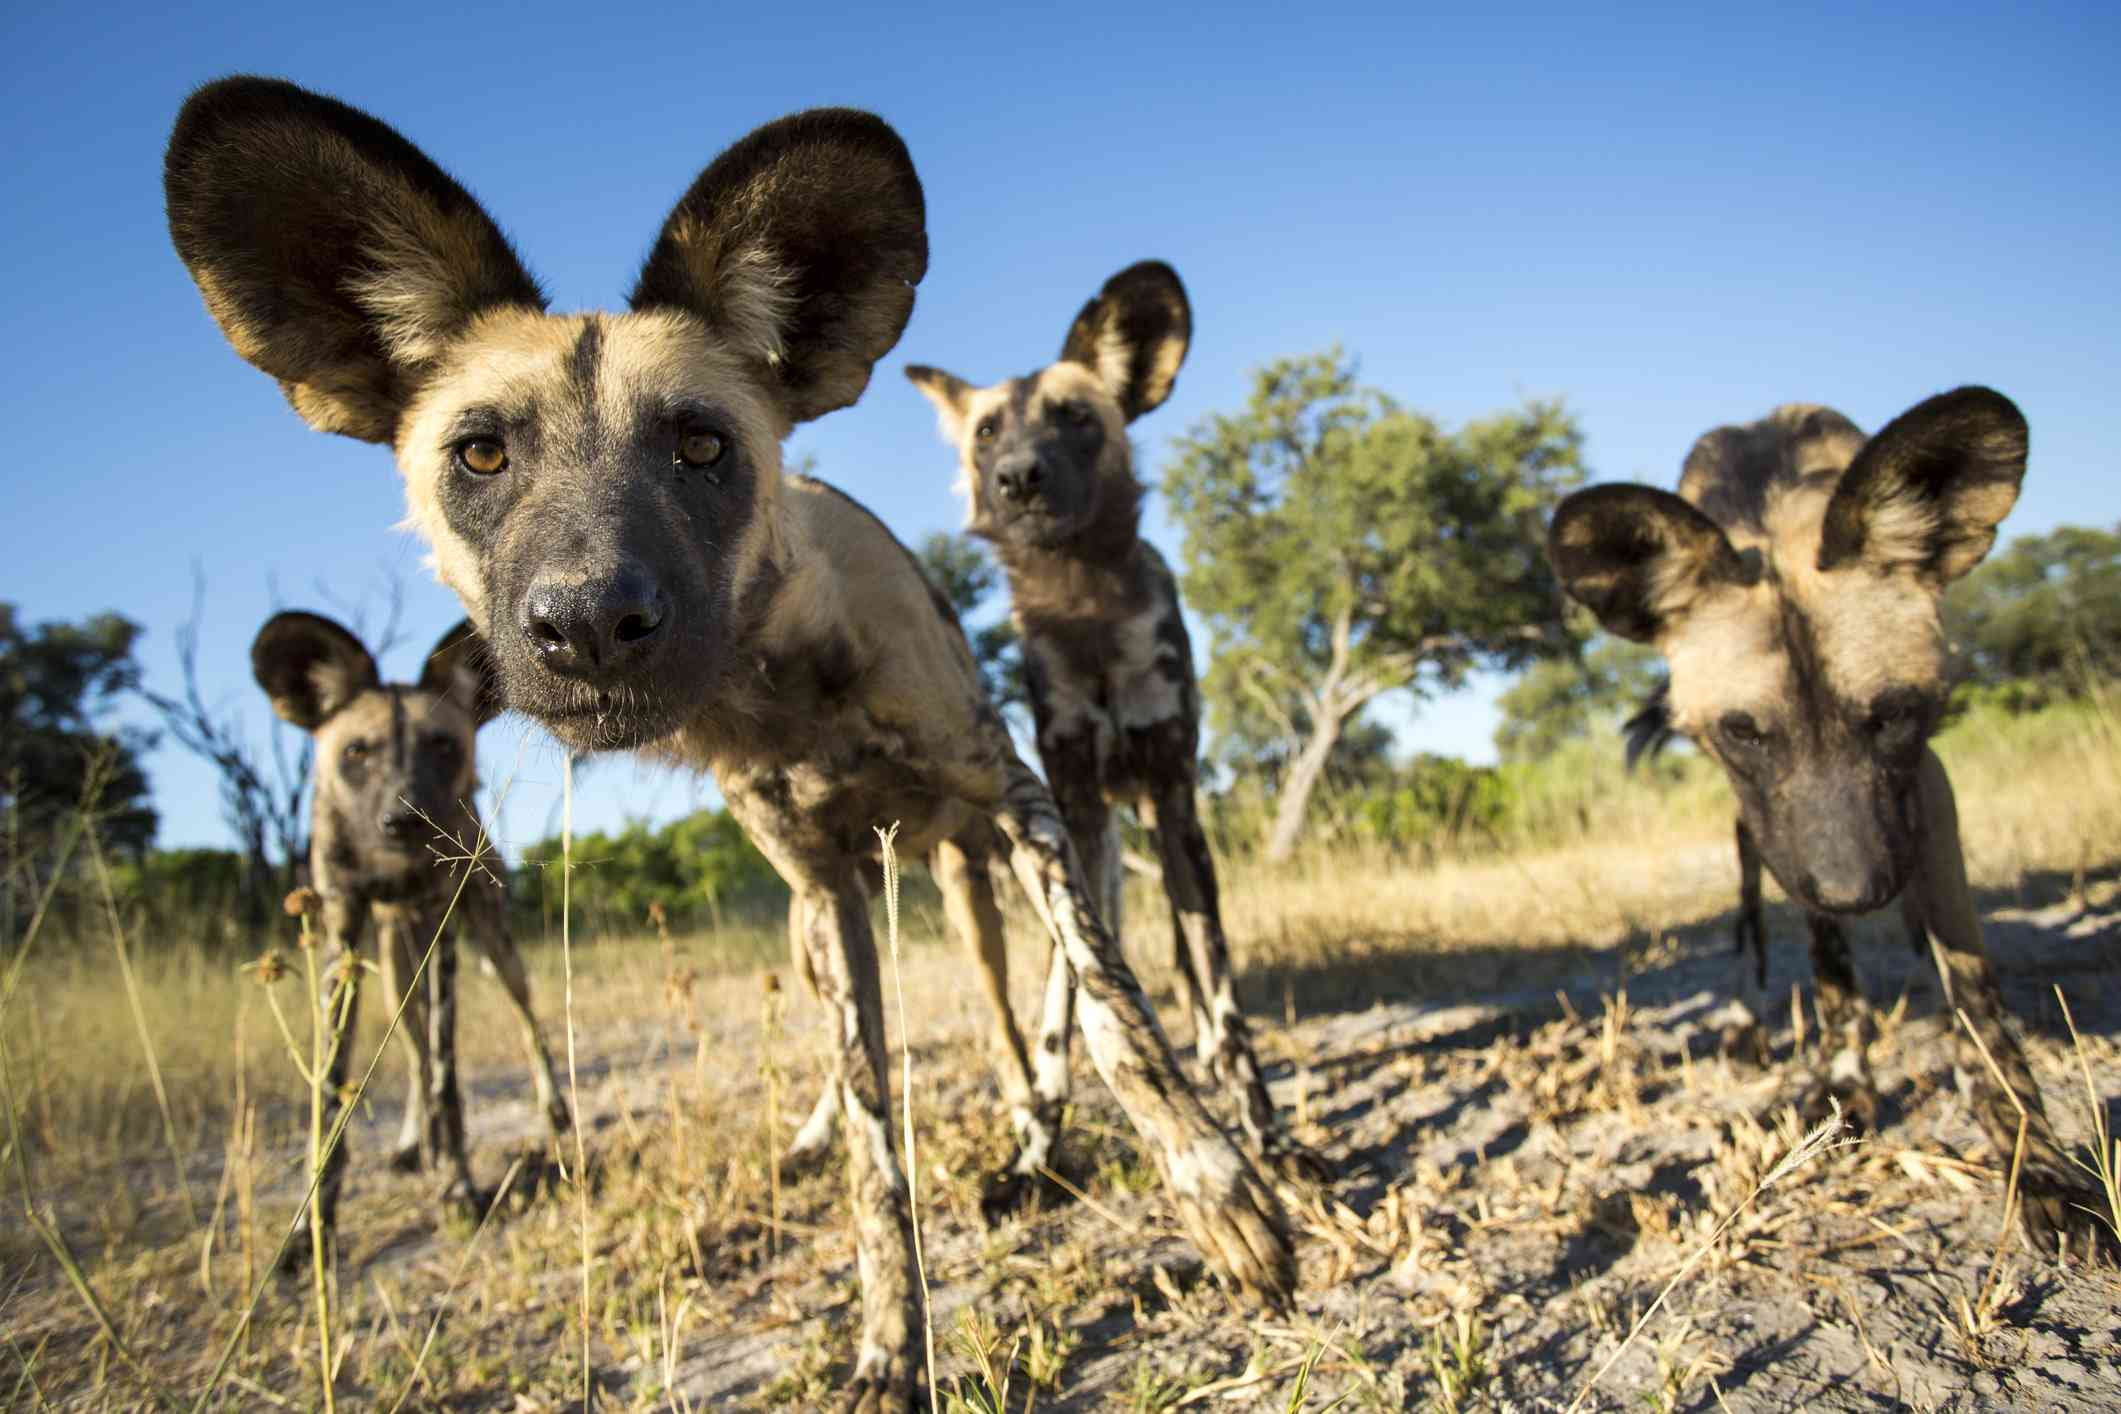 Spotted wild dogs with large round ears looking close at the camera.